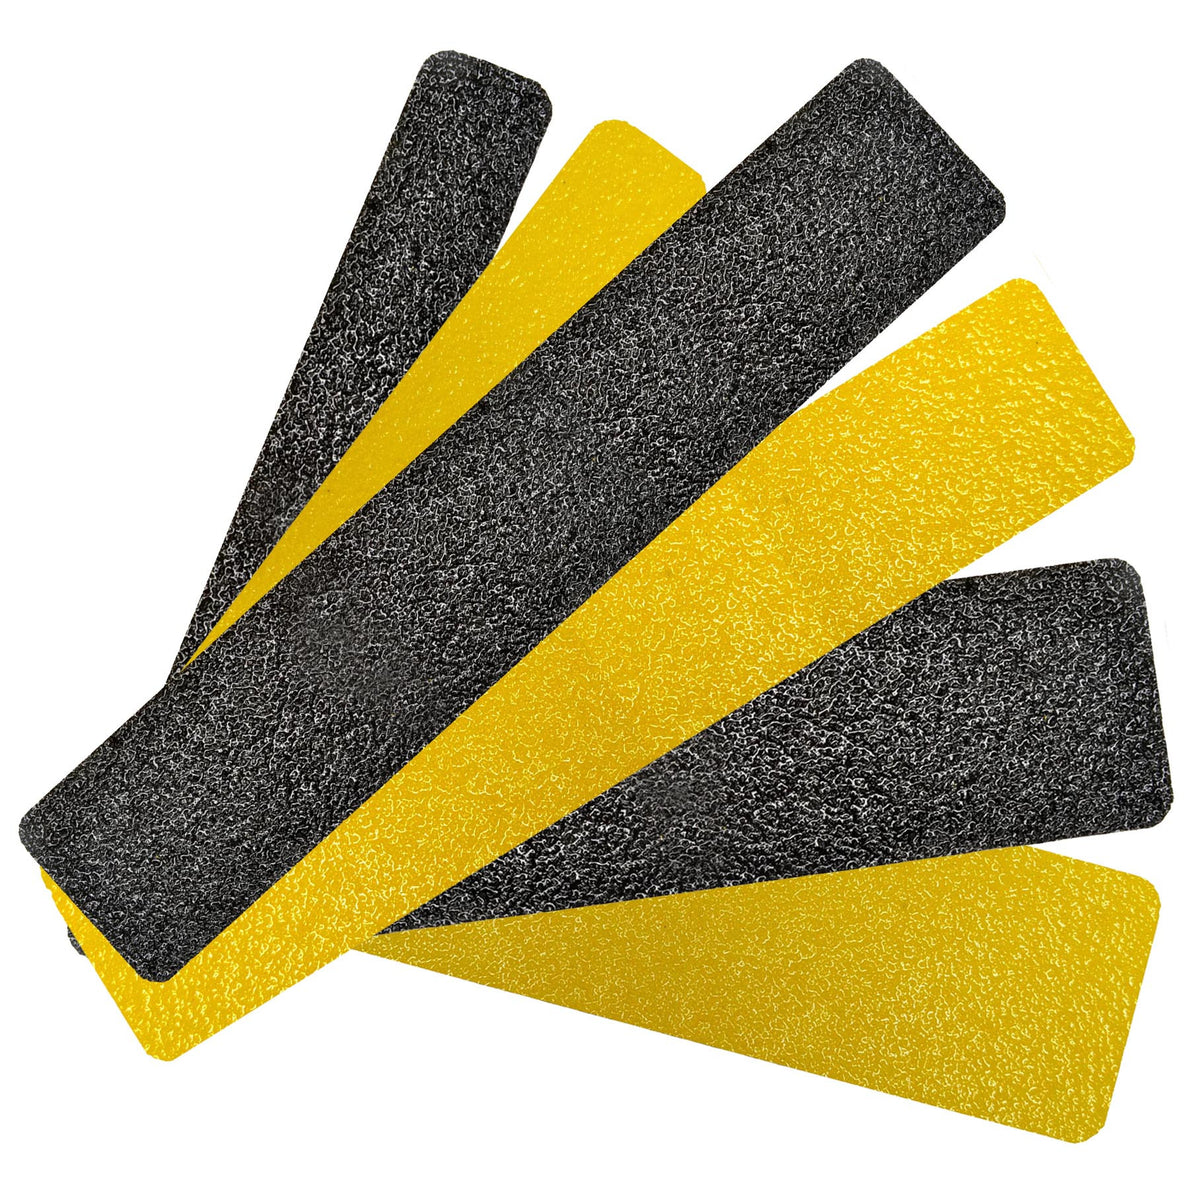 Sure Foot Master Stop Extreme Adhesive Anti Slip Tape & Treads for Harsh Environments